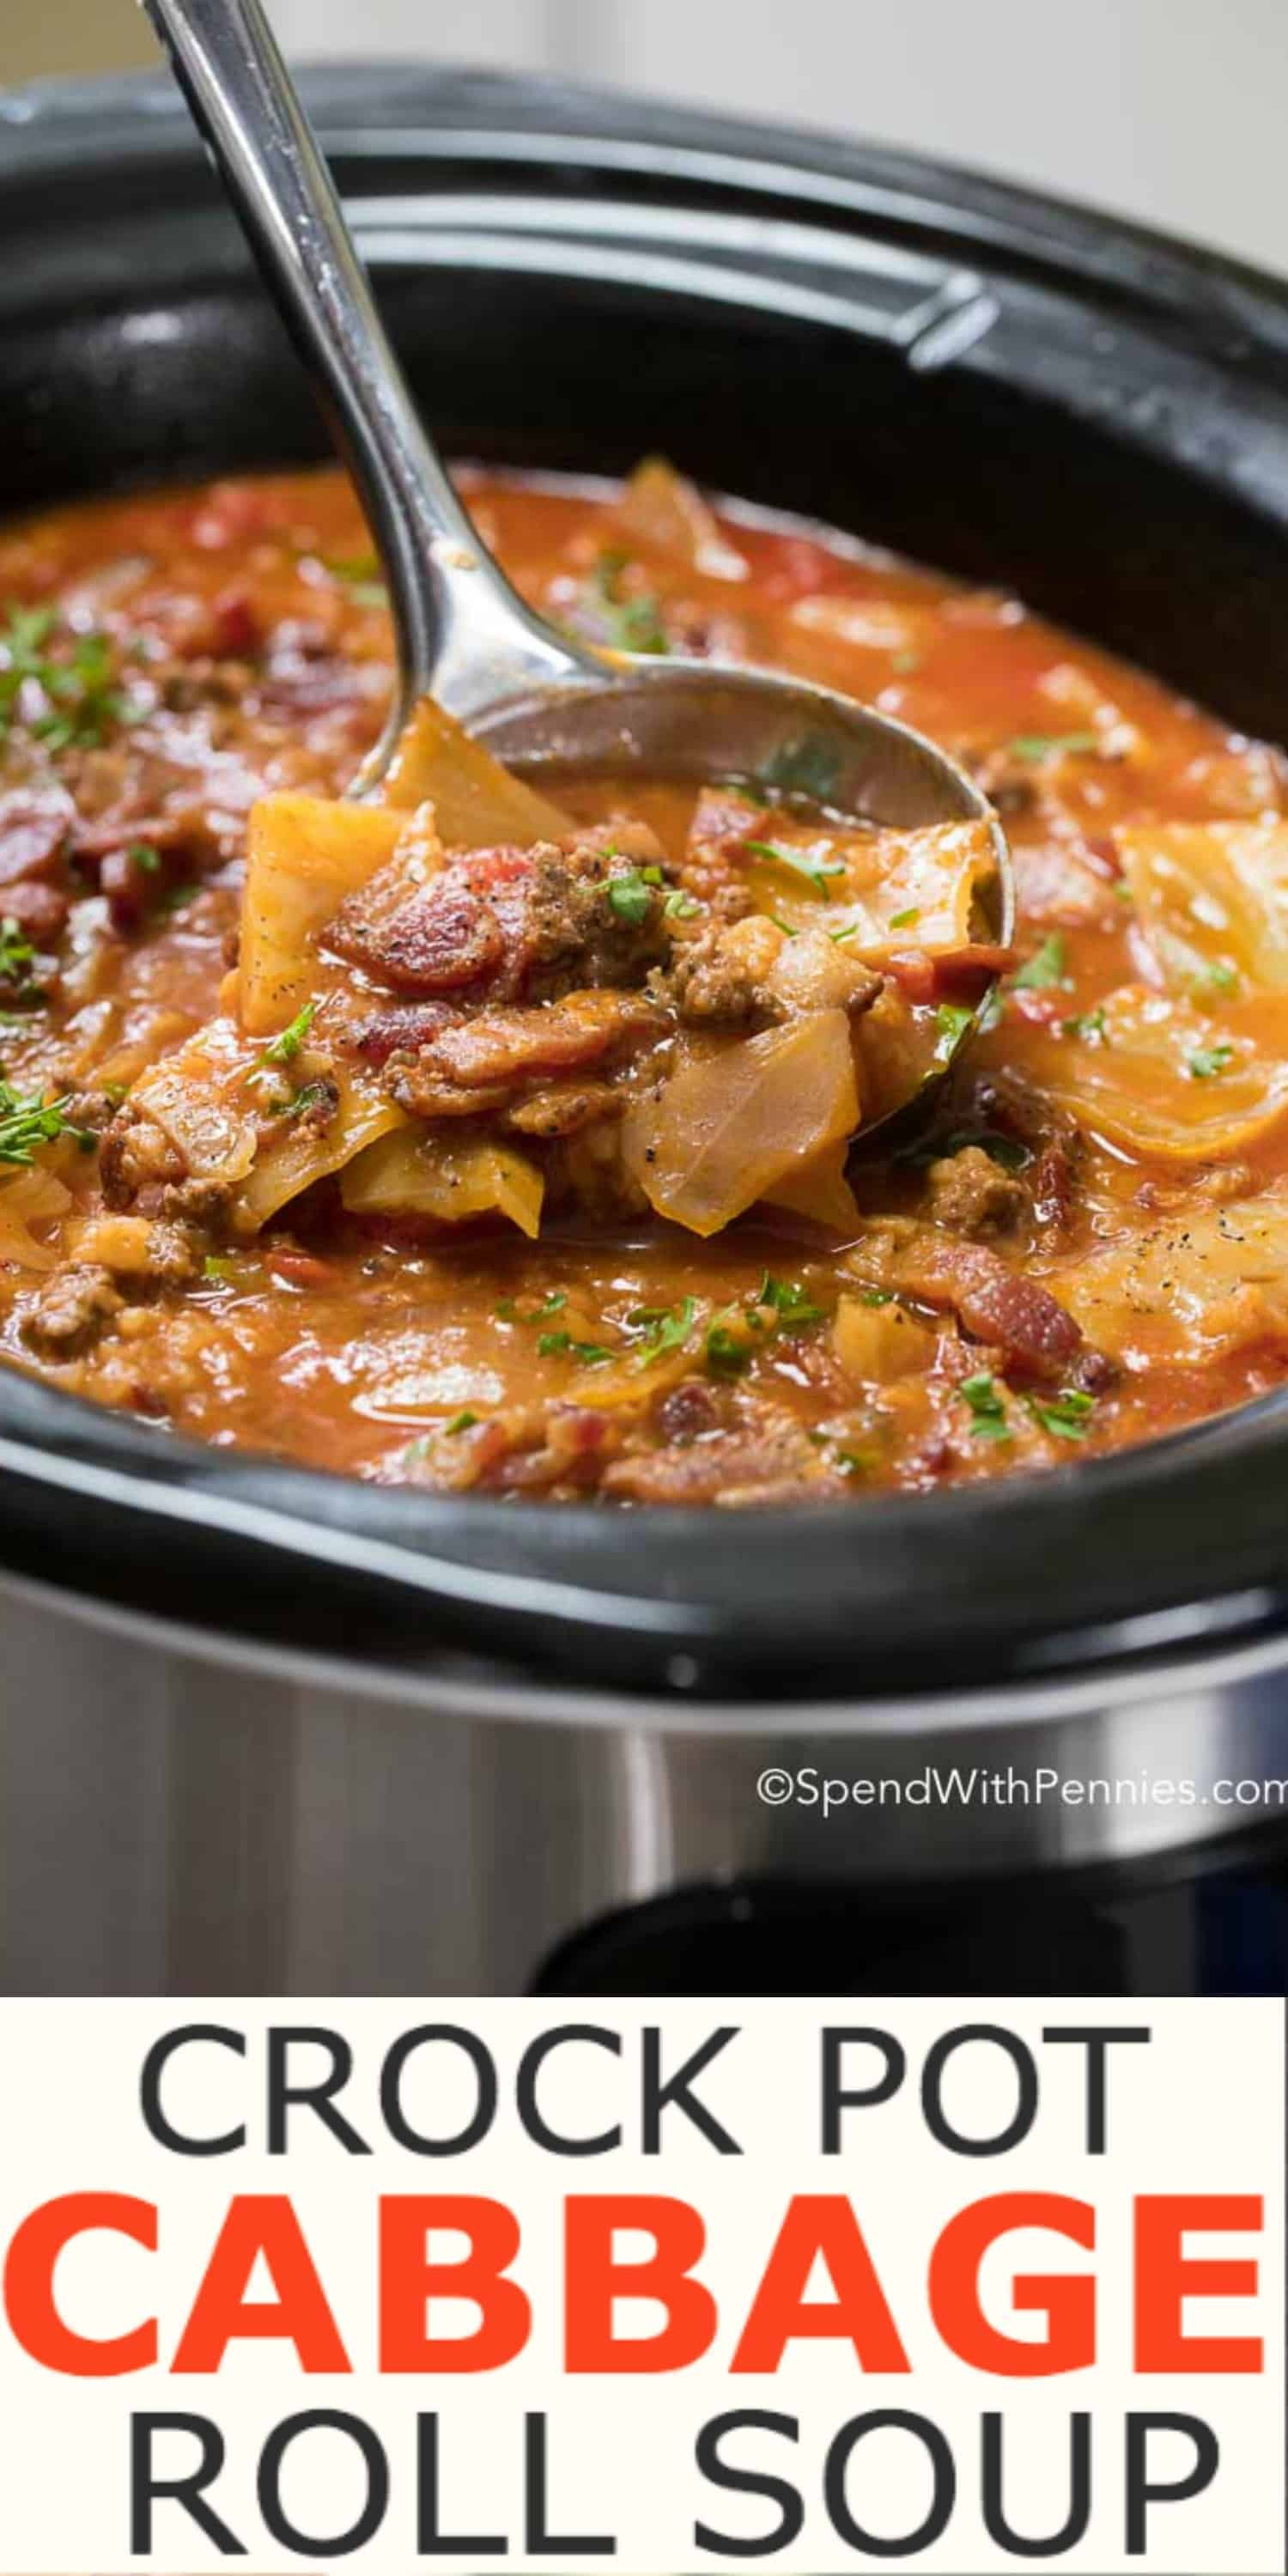 Crock Pot Cabbage Roll Soup is a simple twist on traditional Cabbage Rolls, a family favorite for years! Cabbage, onion, beef and bacon all tenderly prepared in a rich beef and tomato broth, slowly simmered in your crock pot.